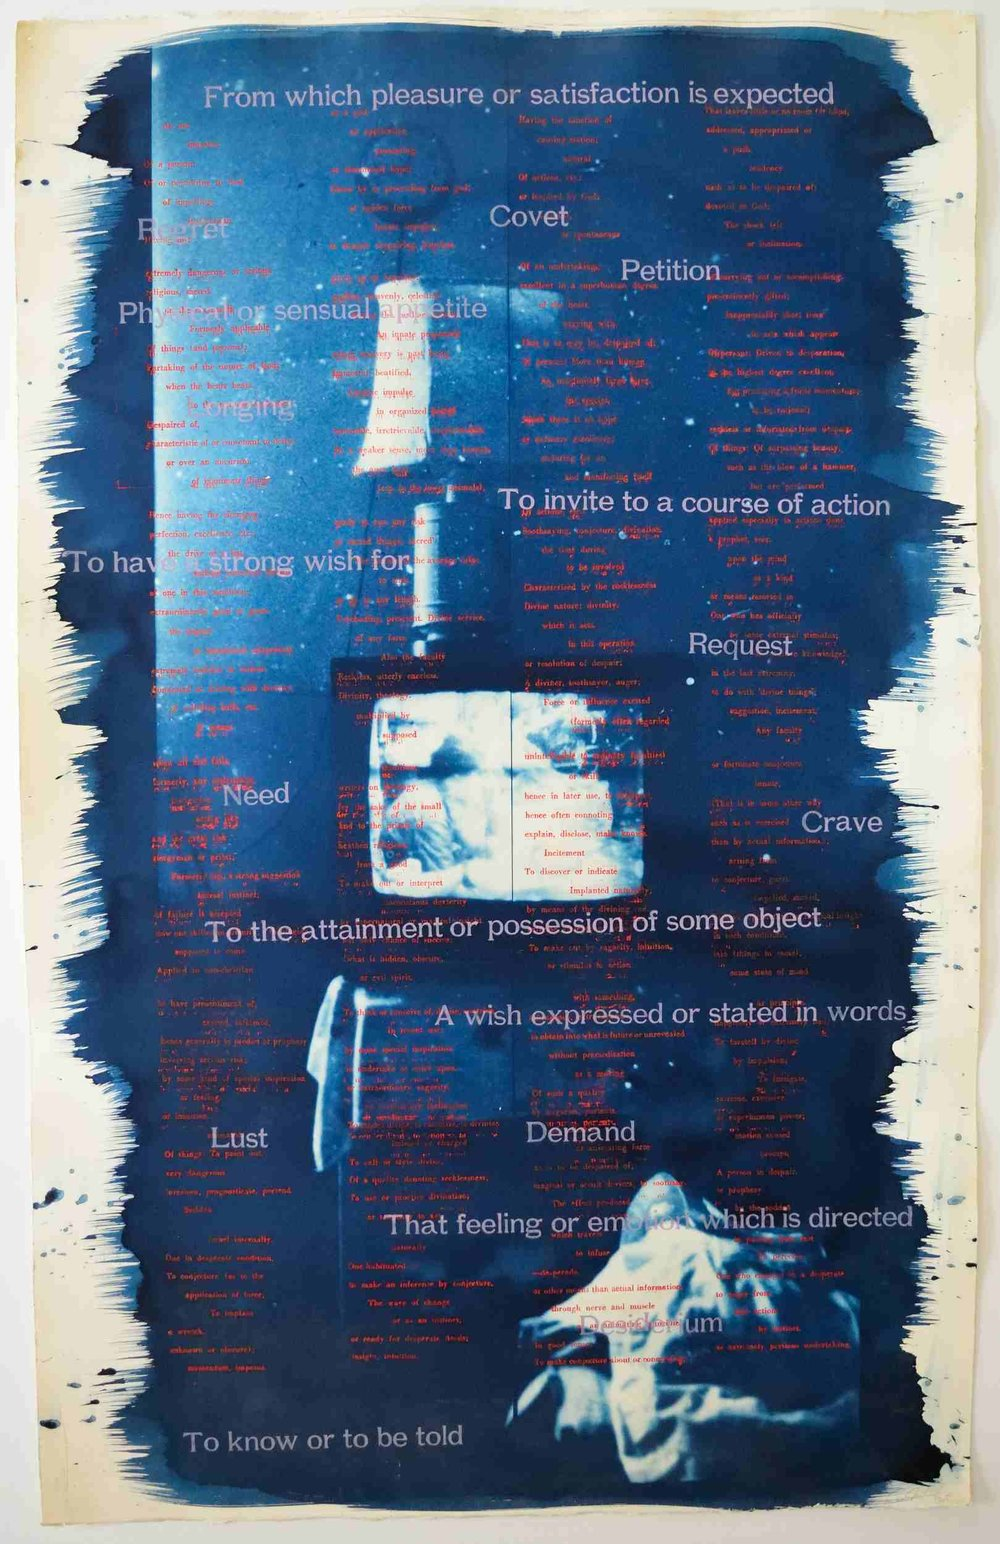 Greg Shattenberg,  Petition , 2003, Mixed media, 26 x 40 inches